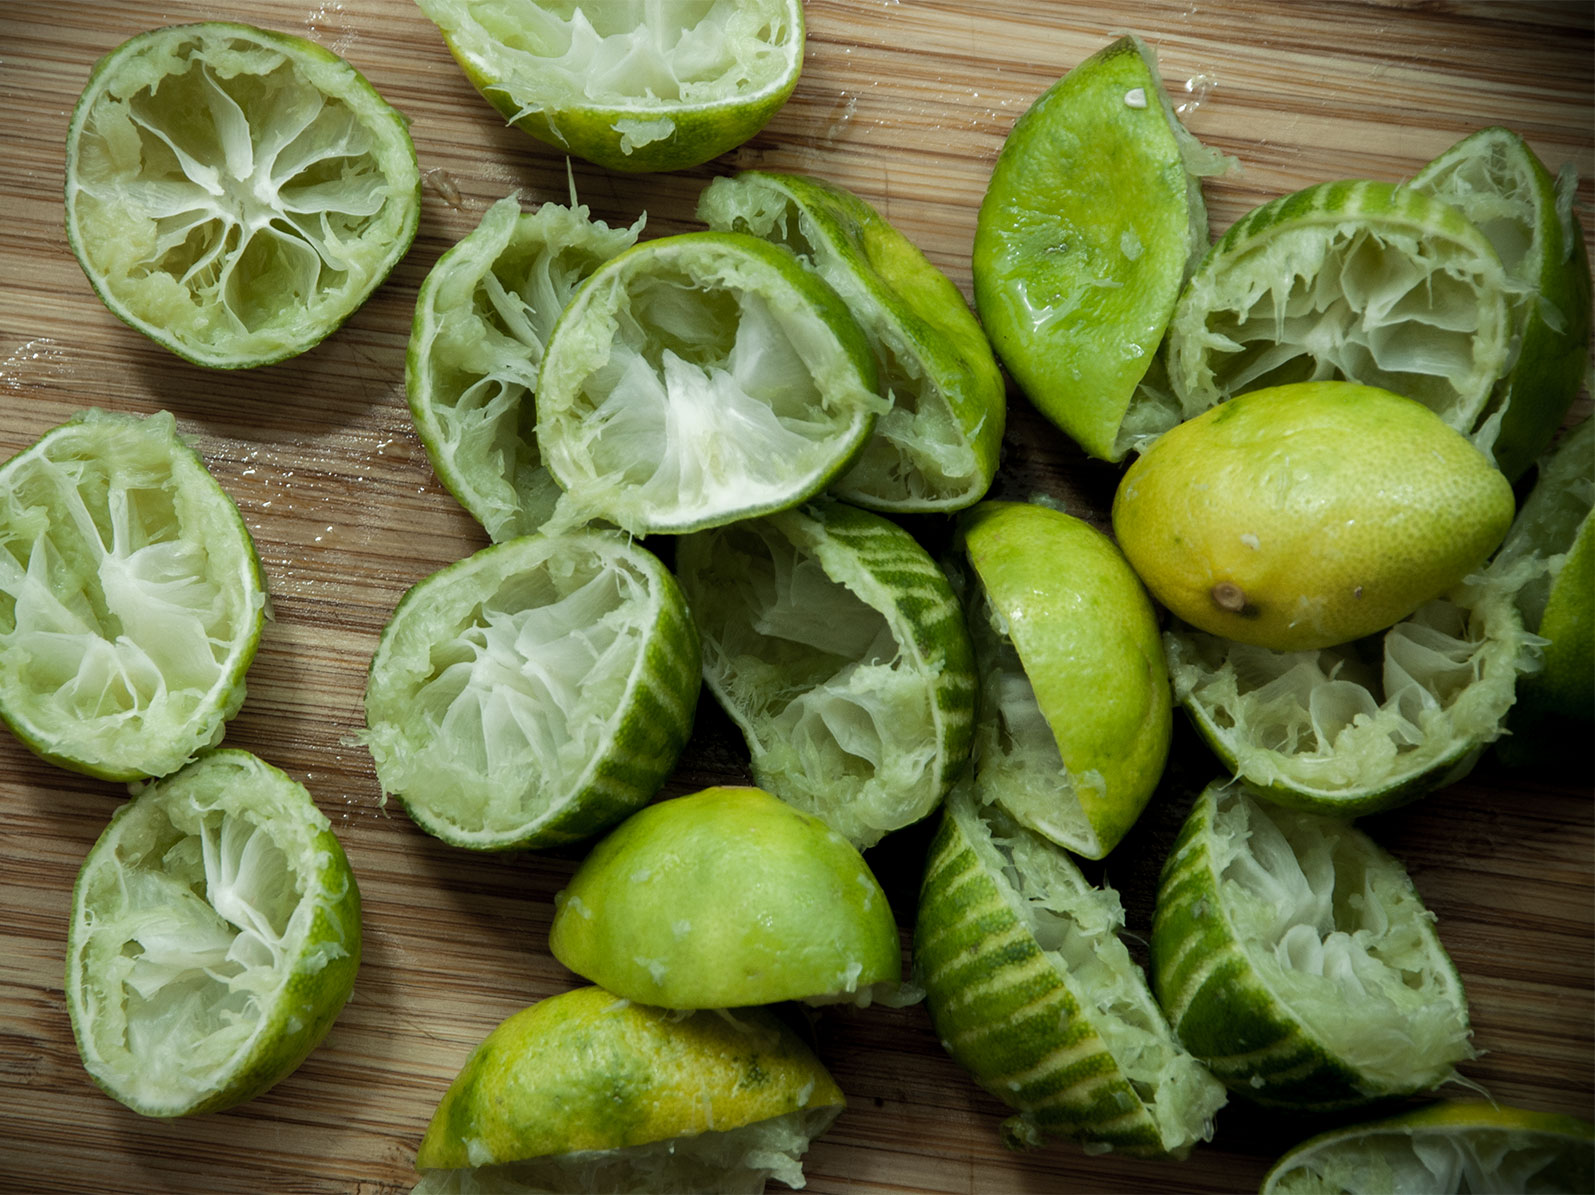 it takes a lot of squeezing to get 120ml juice from authentic small key limes...